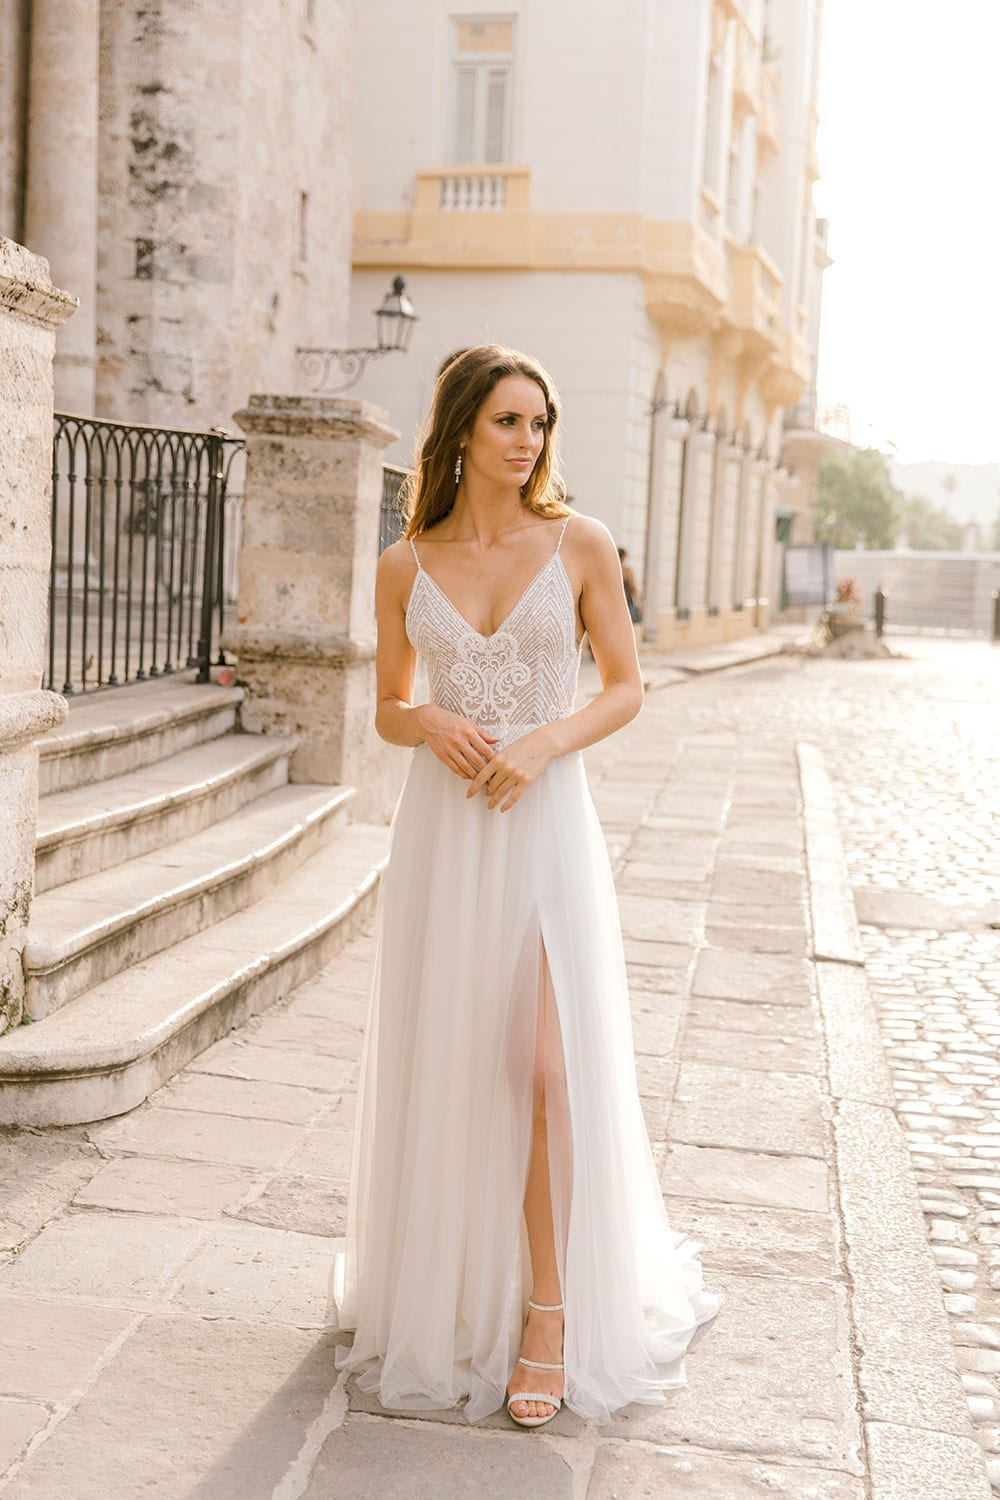 Model wearing Vinka Design Lucia Wedding Dress with Fitted Beaded Bodice, Tulle Skirt and Split walking in front of old church in plaza in Havana